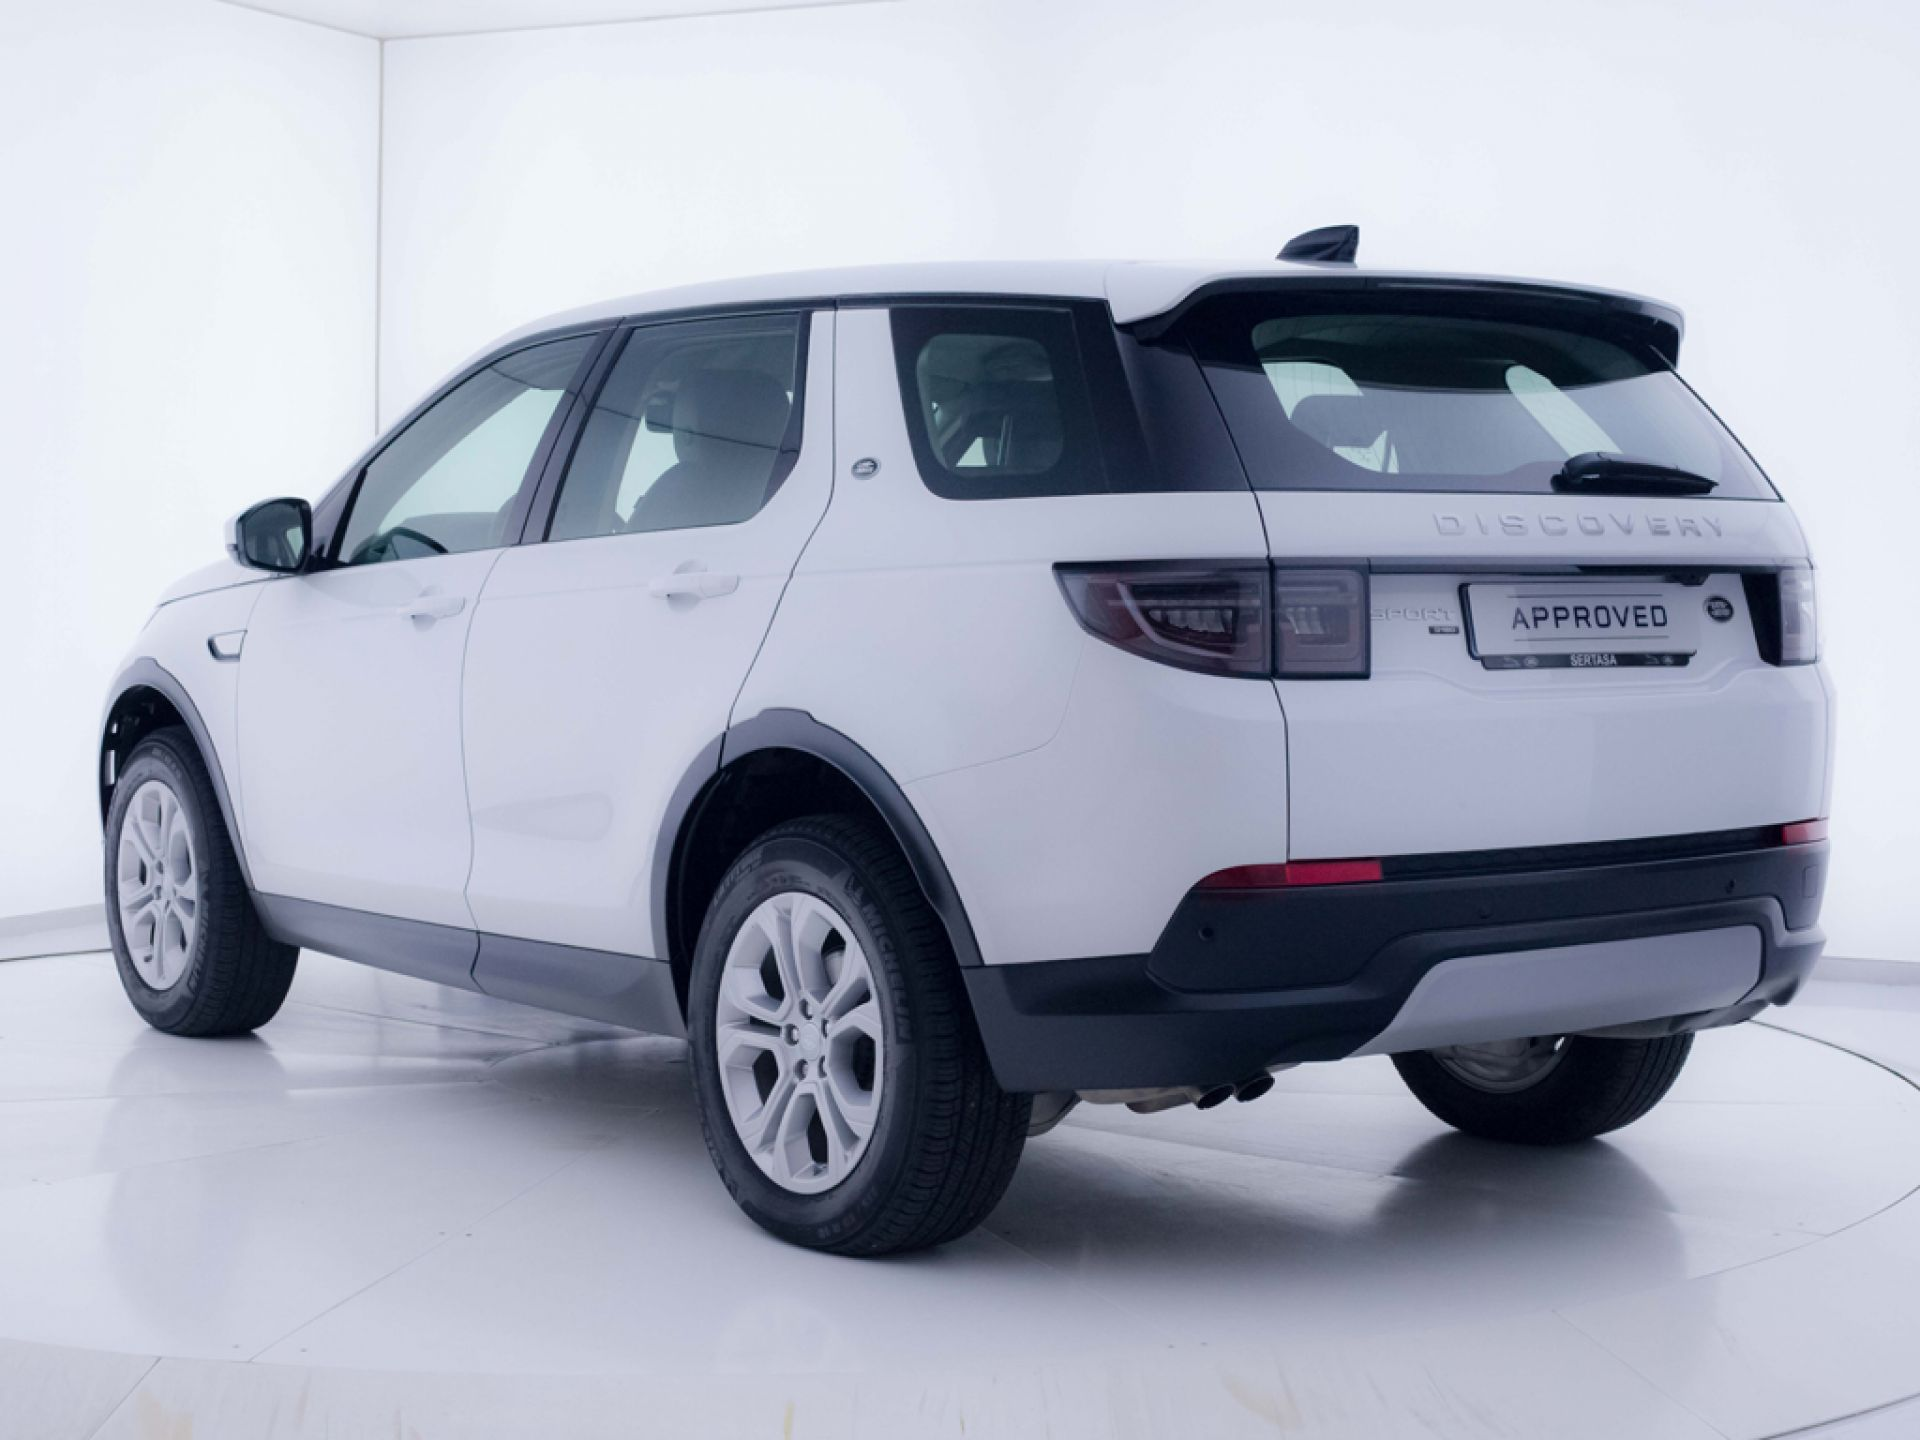 Land Rover Discovery Sport 2.0D TD4 180 PS AWD Auto MHEV Standard